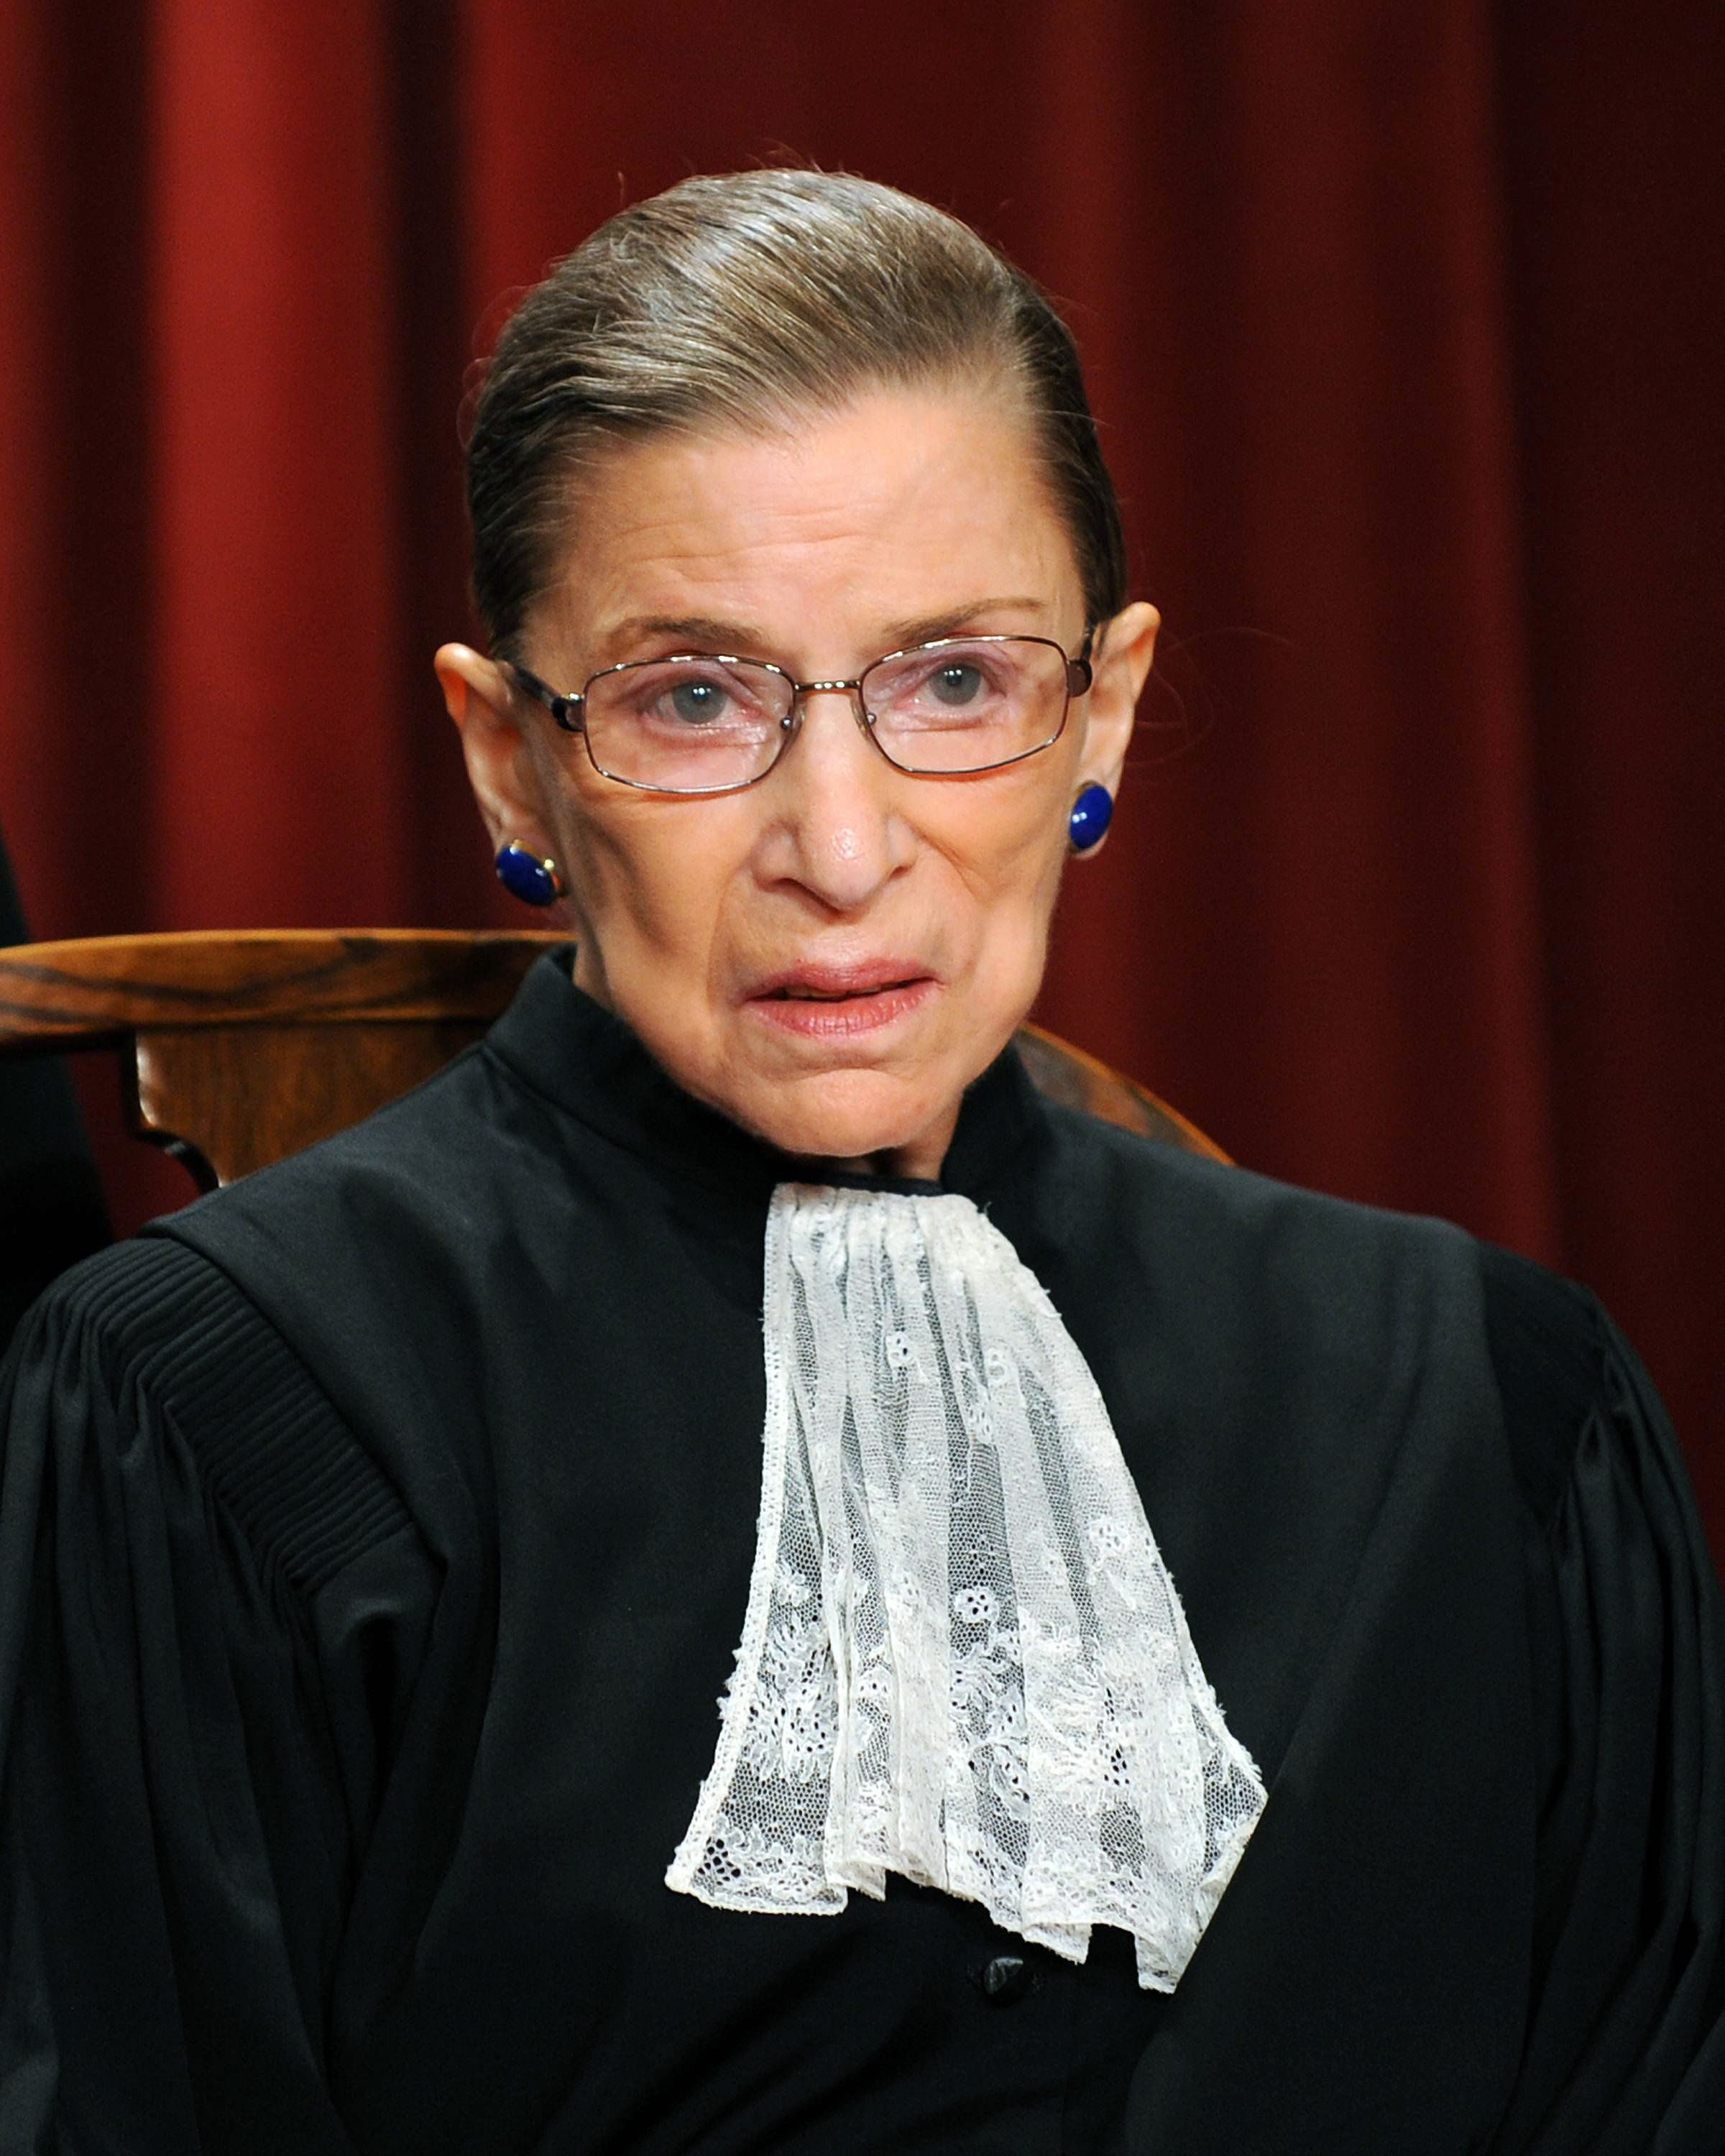 US Supreme Court Associate Justice Ruth Bader Ginsburg participates in the courts official photo session on October 8, 2010 at the Supreme Court in Washington, DC.   AFP PHOTO / TIM SLOAN (Photo credit should read TIM SLOAN/AFP/Getty Images)